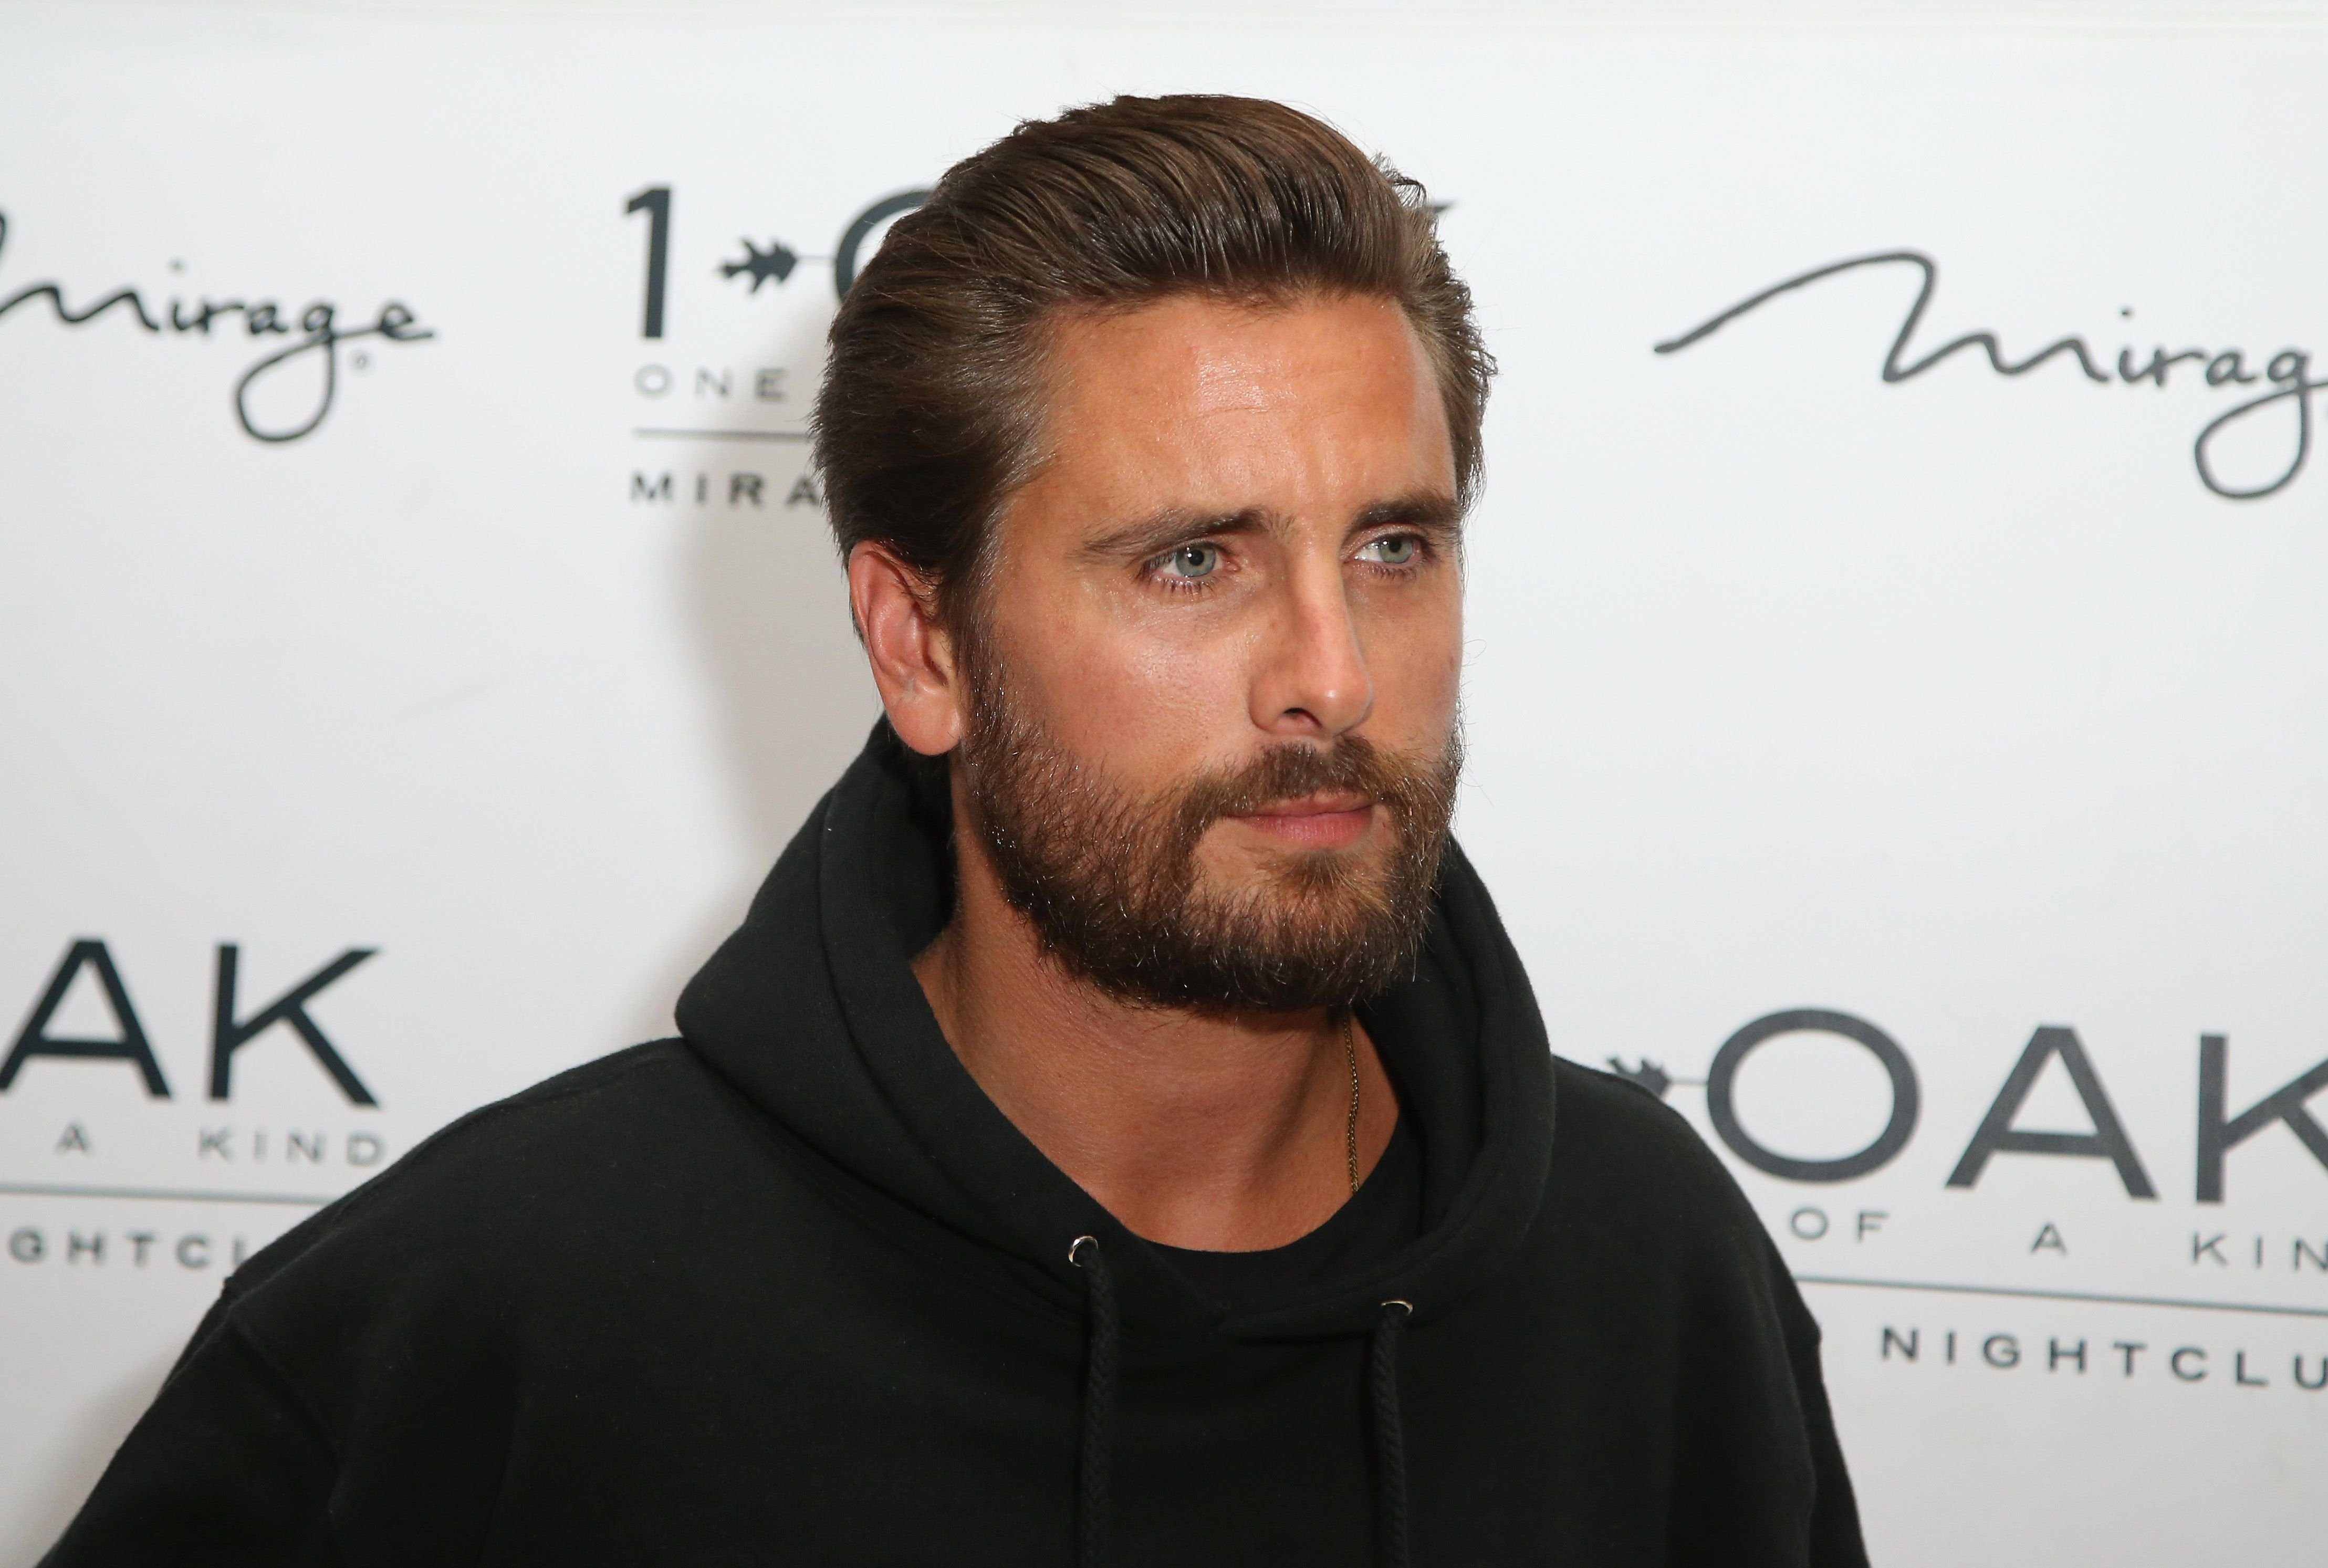 Scott Disick / Getty Images